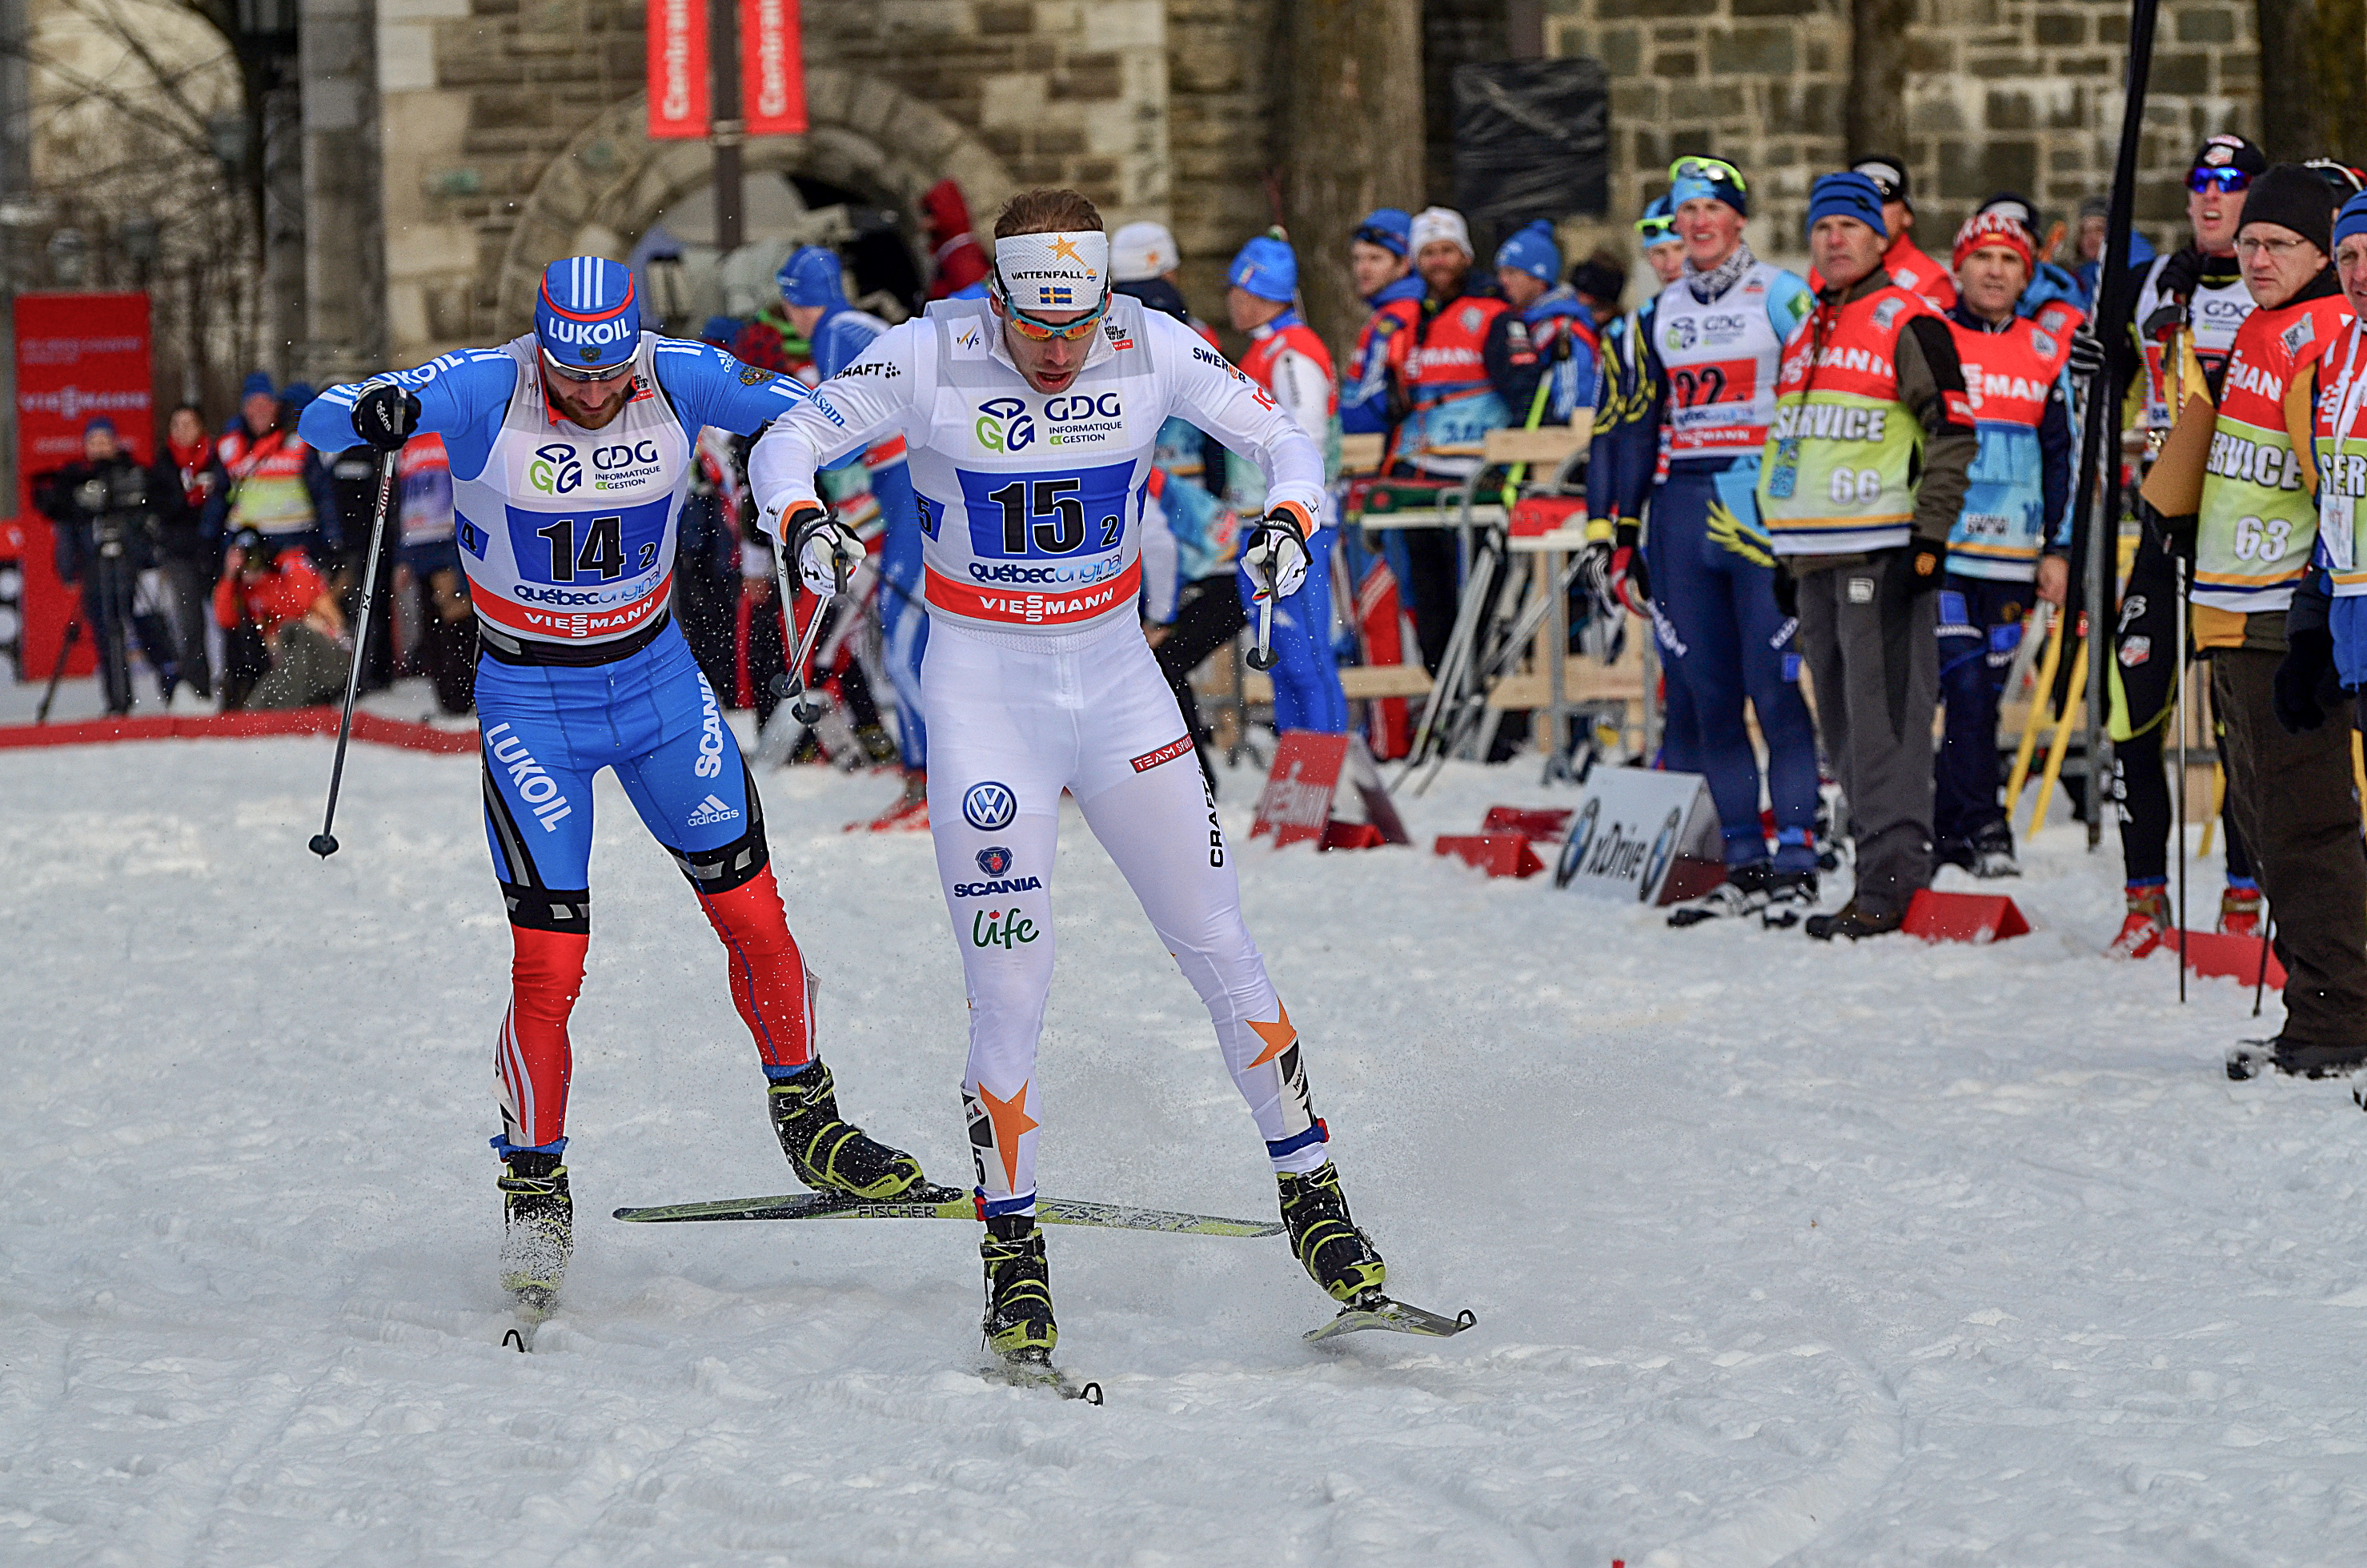 File:Quebec Sprint Cross-country Skiing World Cup 2012 (4) V2.jpg ...